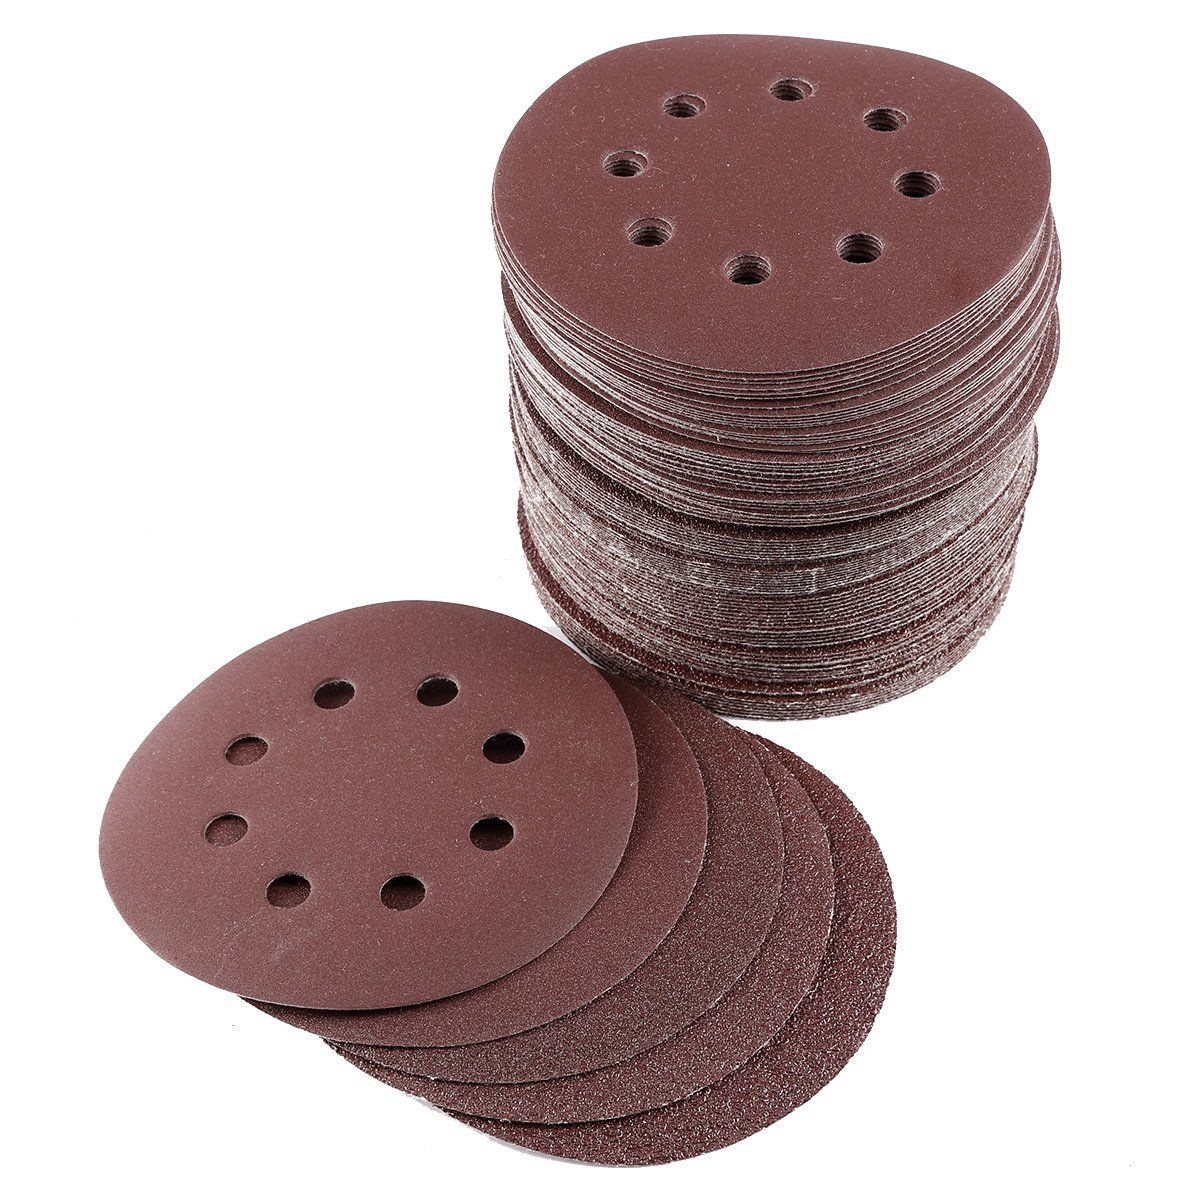 100x Discs Sanding 125mm Paper Abrasive Emeri Sander Paper Glass Grain 40/60/80/120/240 Sheet Polishing Furniture